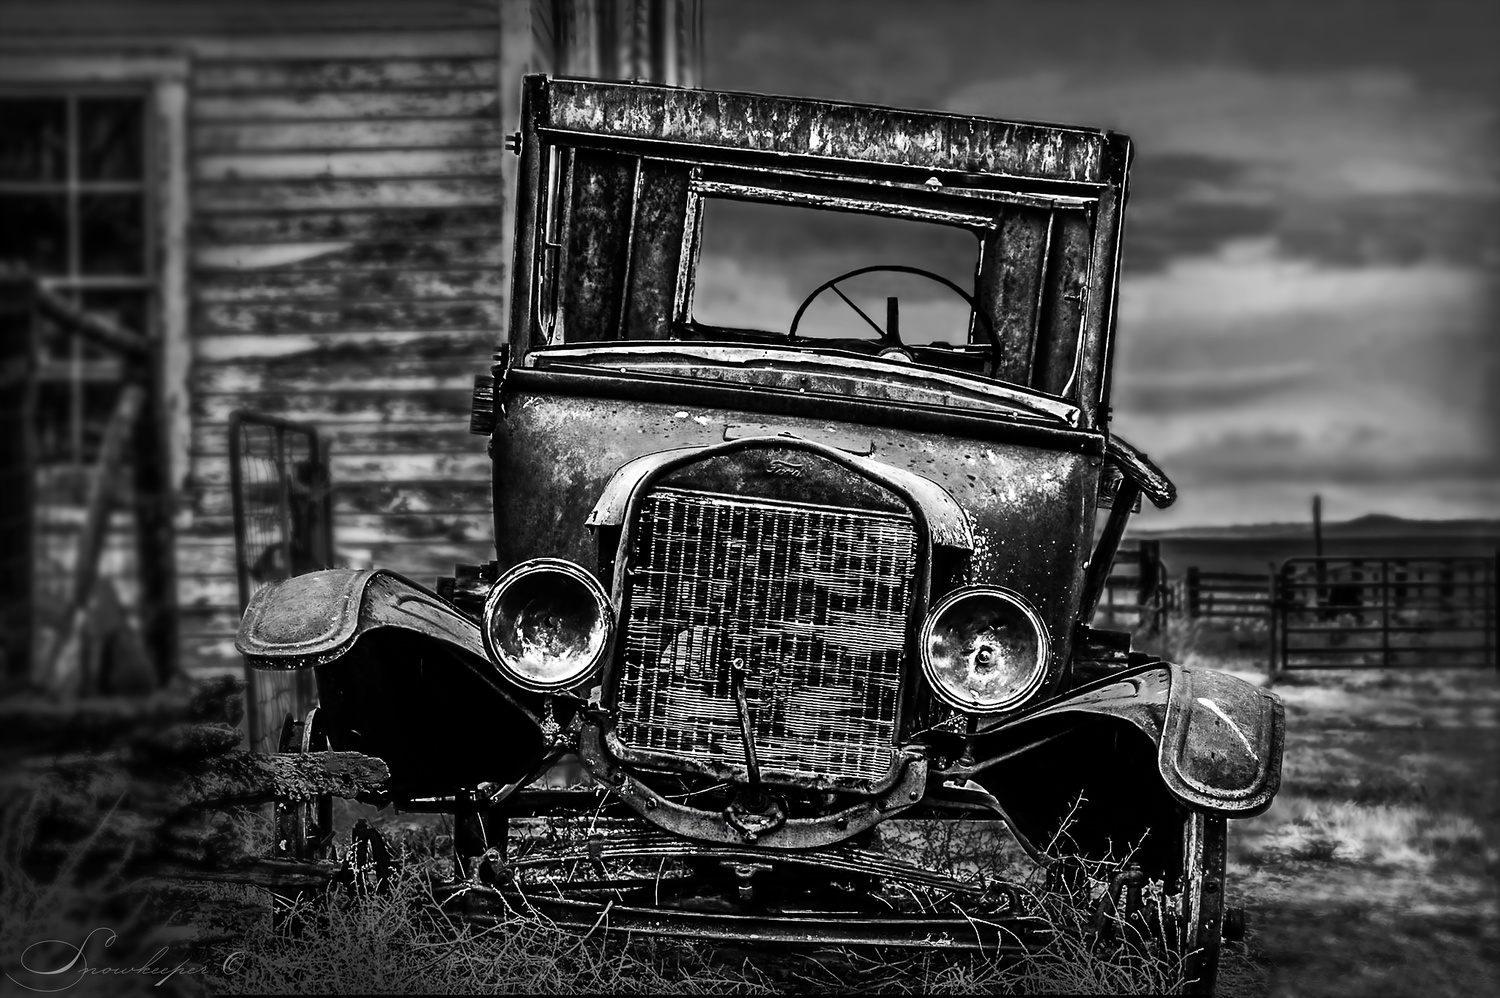 The Old Timer by Heather Langlois